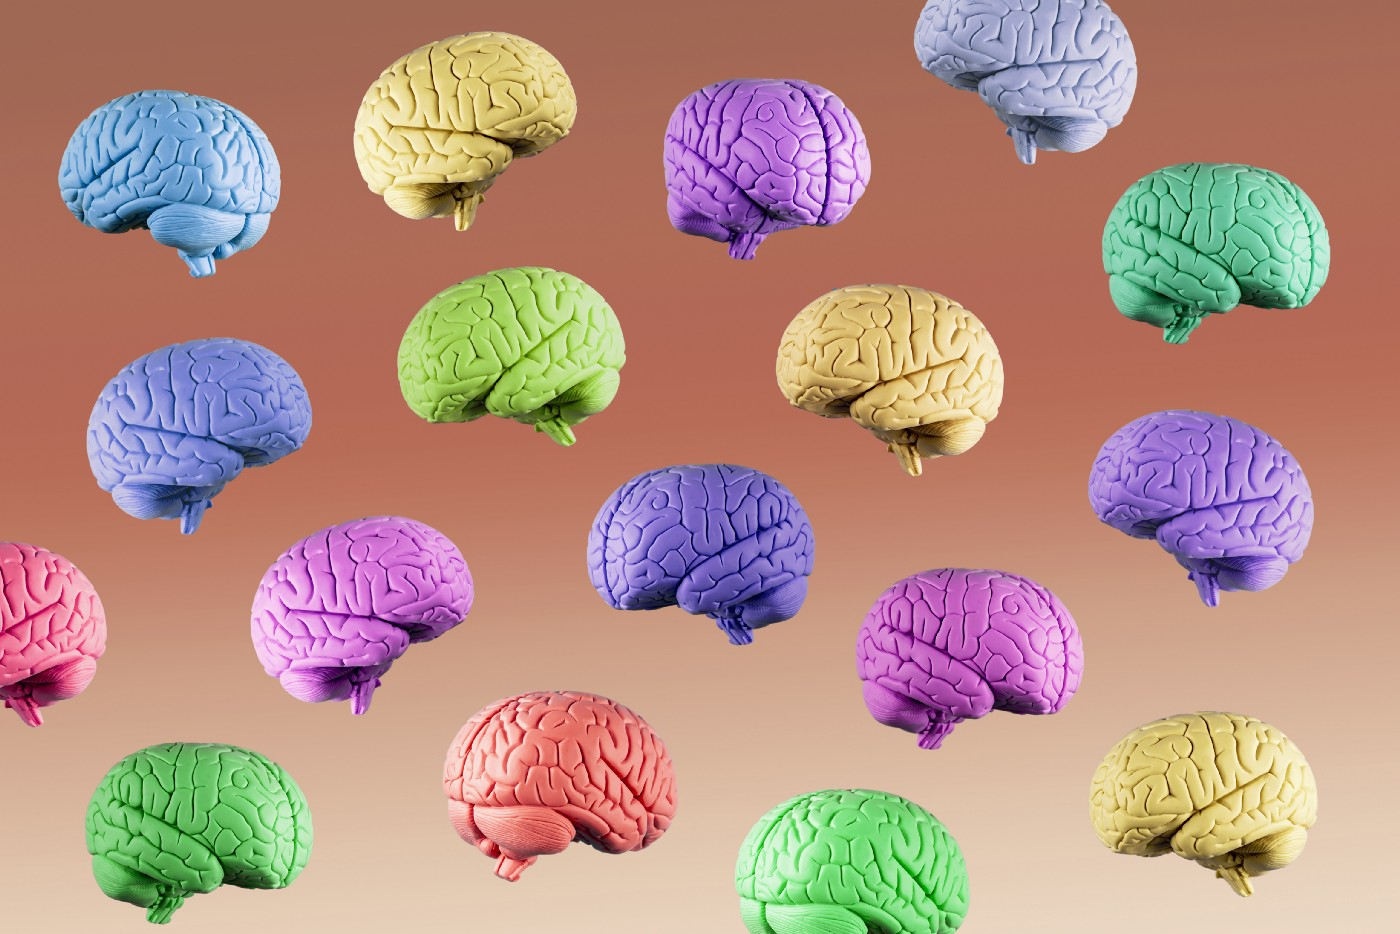 Multicolored blue, green, yellow, purple, and orange human brains floating mid air on a gradient brown background.